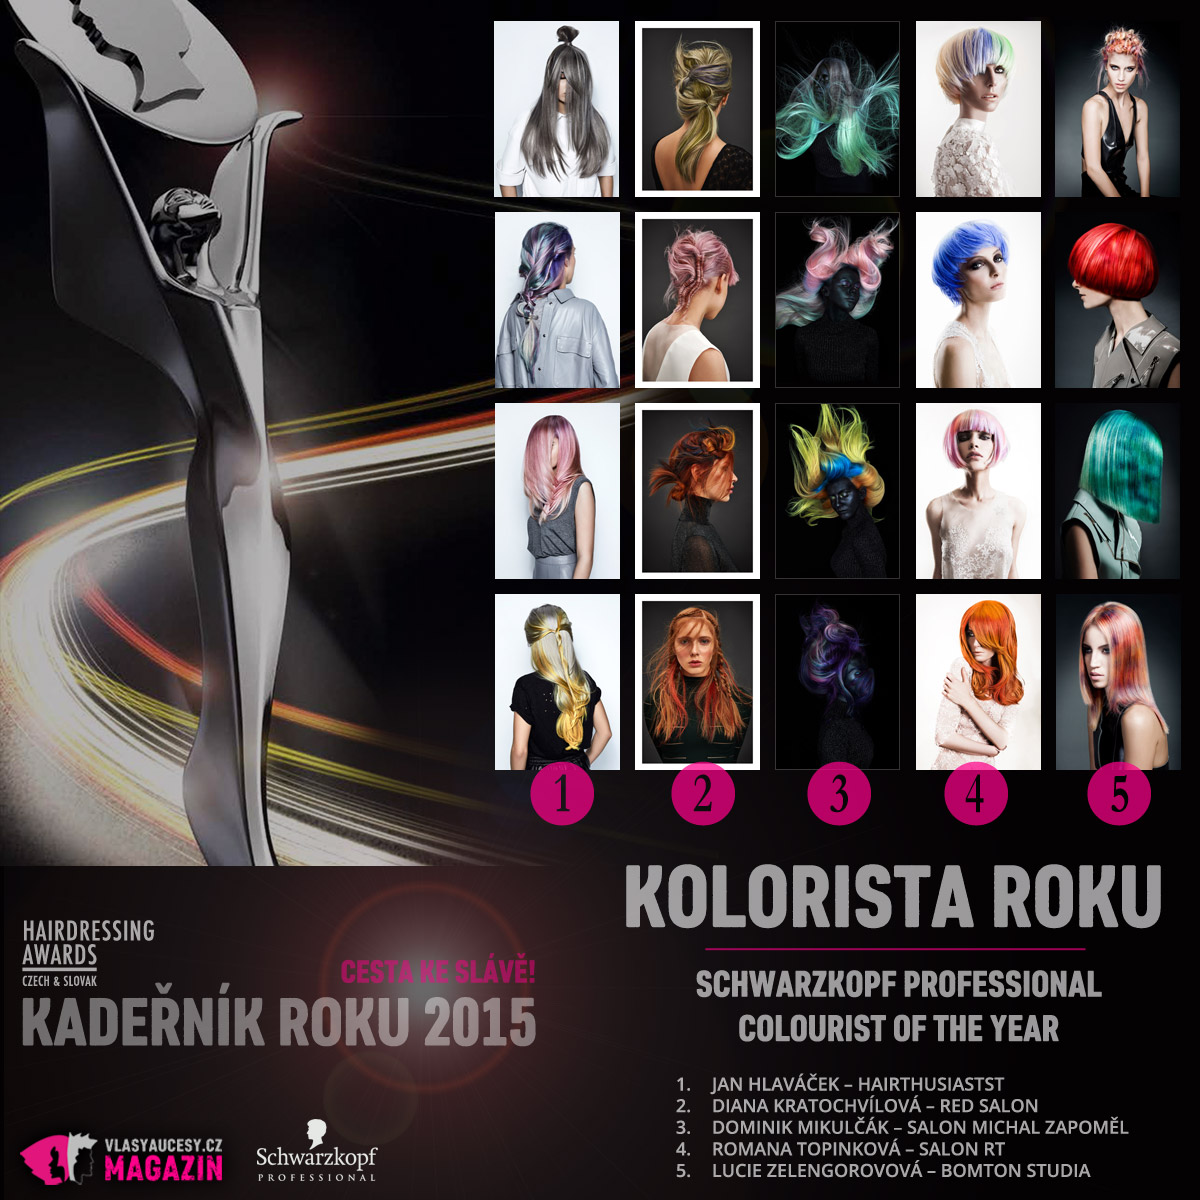 Kadeřník roku 2015 – kategorie Kolorista roku / Schwarzkopf Professional Colourist of the Year (Jan Hlaváček – Hairthusiasts, Diana Kratochvílová – RED Salon, Dominik Mikulčák – Salon Michal Zapoměl, Romana Topinková – Salon RT, Lucie Zelengorovová – Bomton Studia).